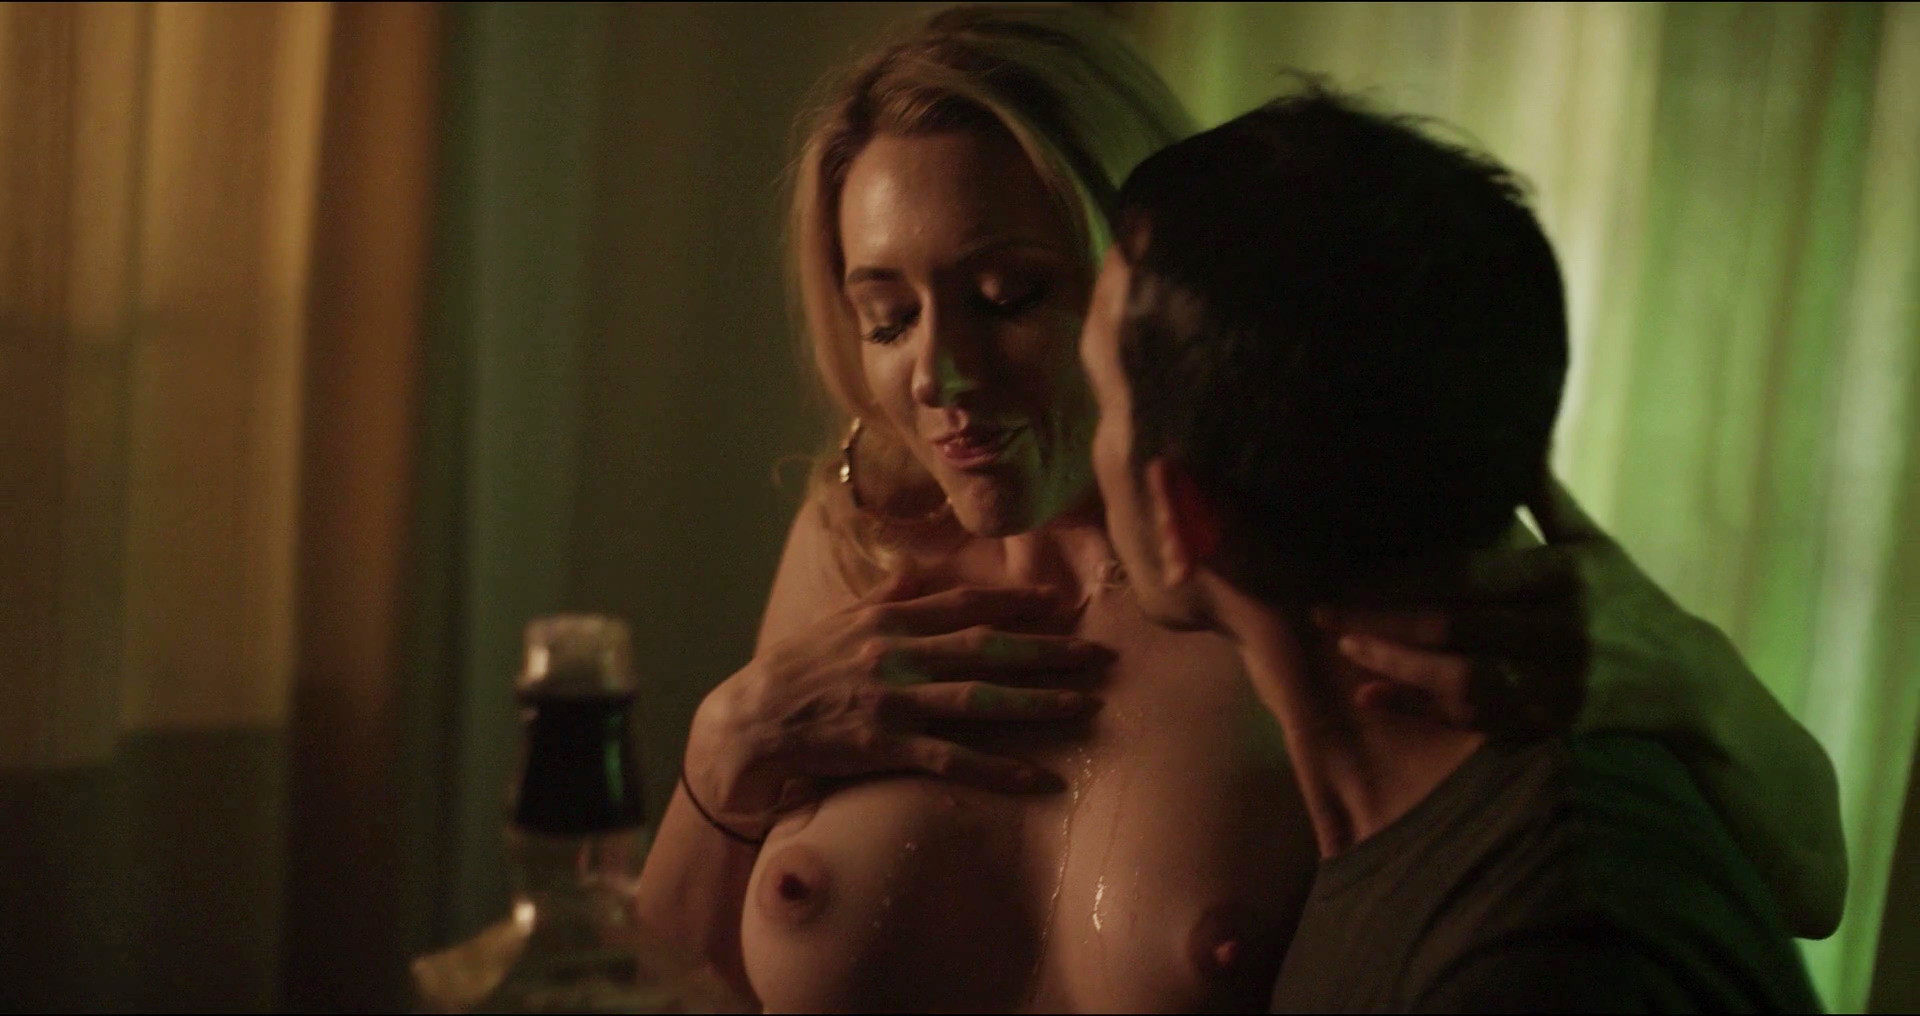 Andrea Lowell Topless 4 TheFappening.nu